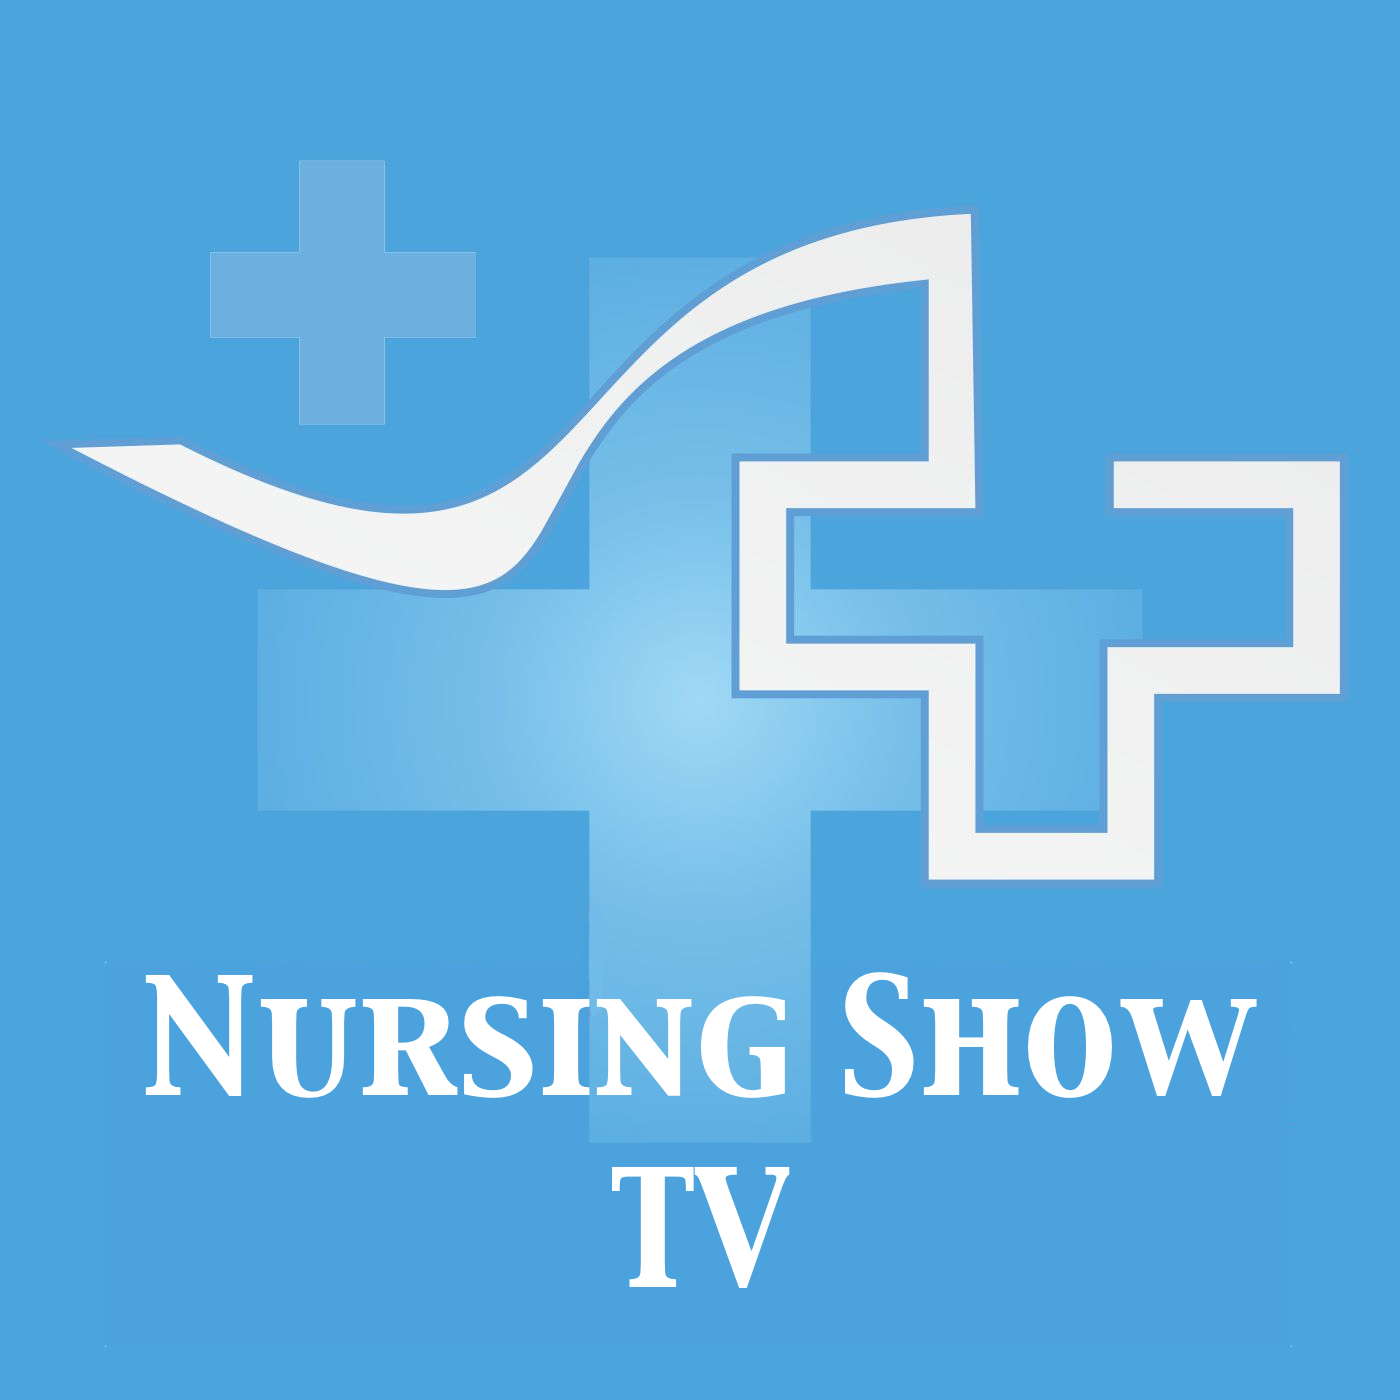 Nursing Show Episode Studio Video